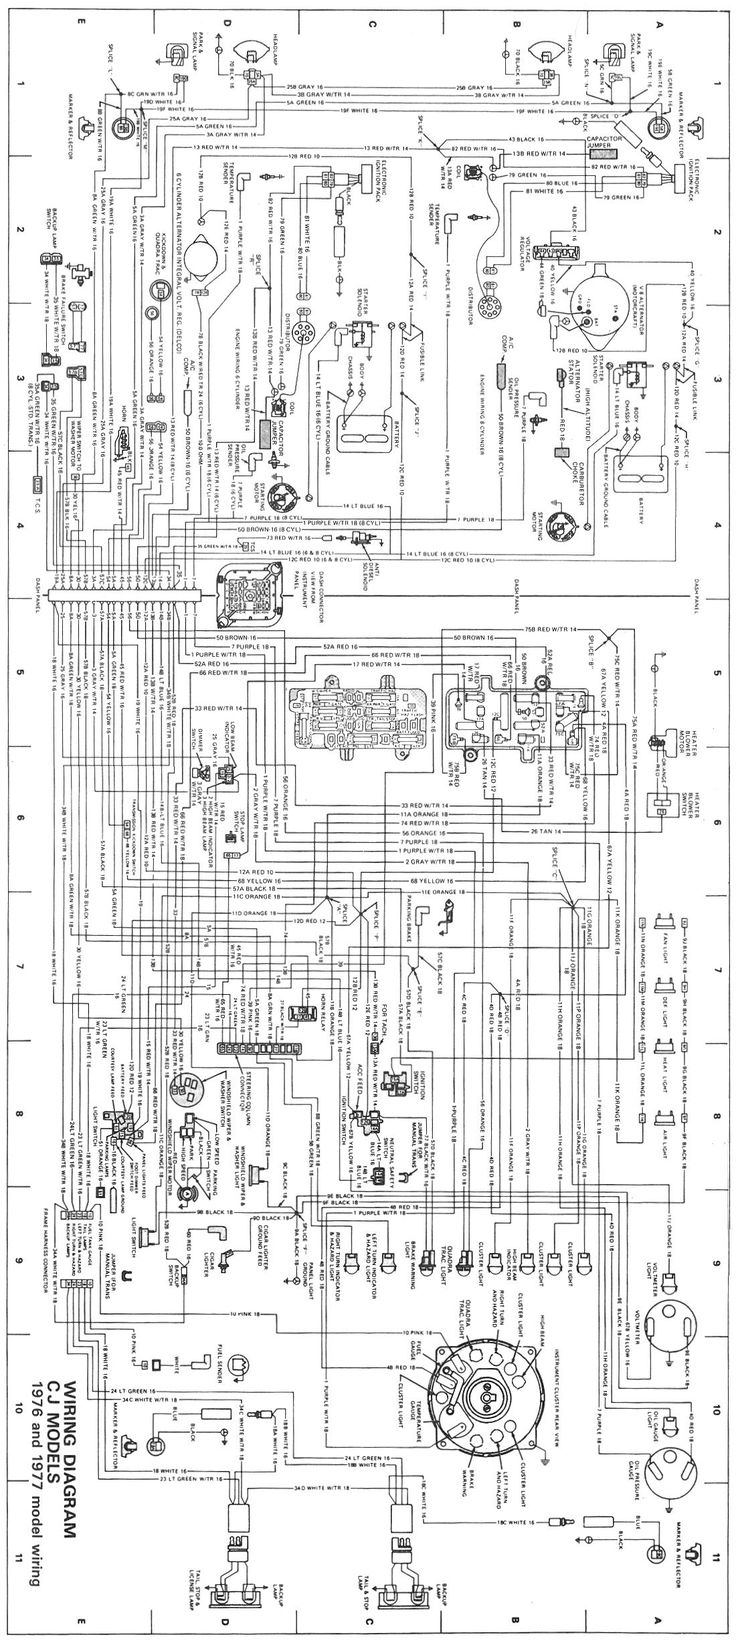 8d25ded6e3673519e155875e09844e5e jeep cj jeep stuff 74 best 1976 jeep cj5 ideas, parts etc images on pinterest jeeps 1986 jeep cj7 wiring diagram at soozxer.org